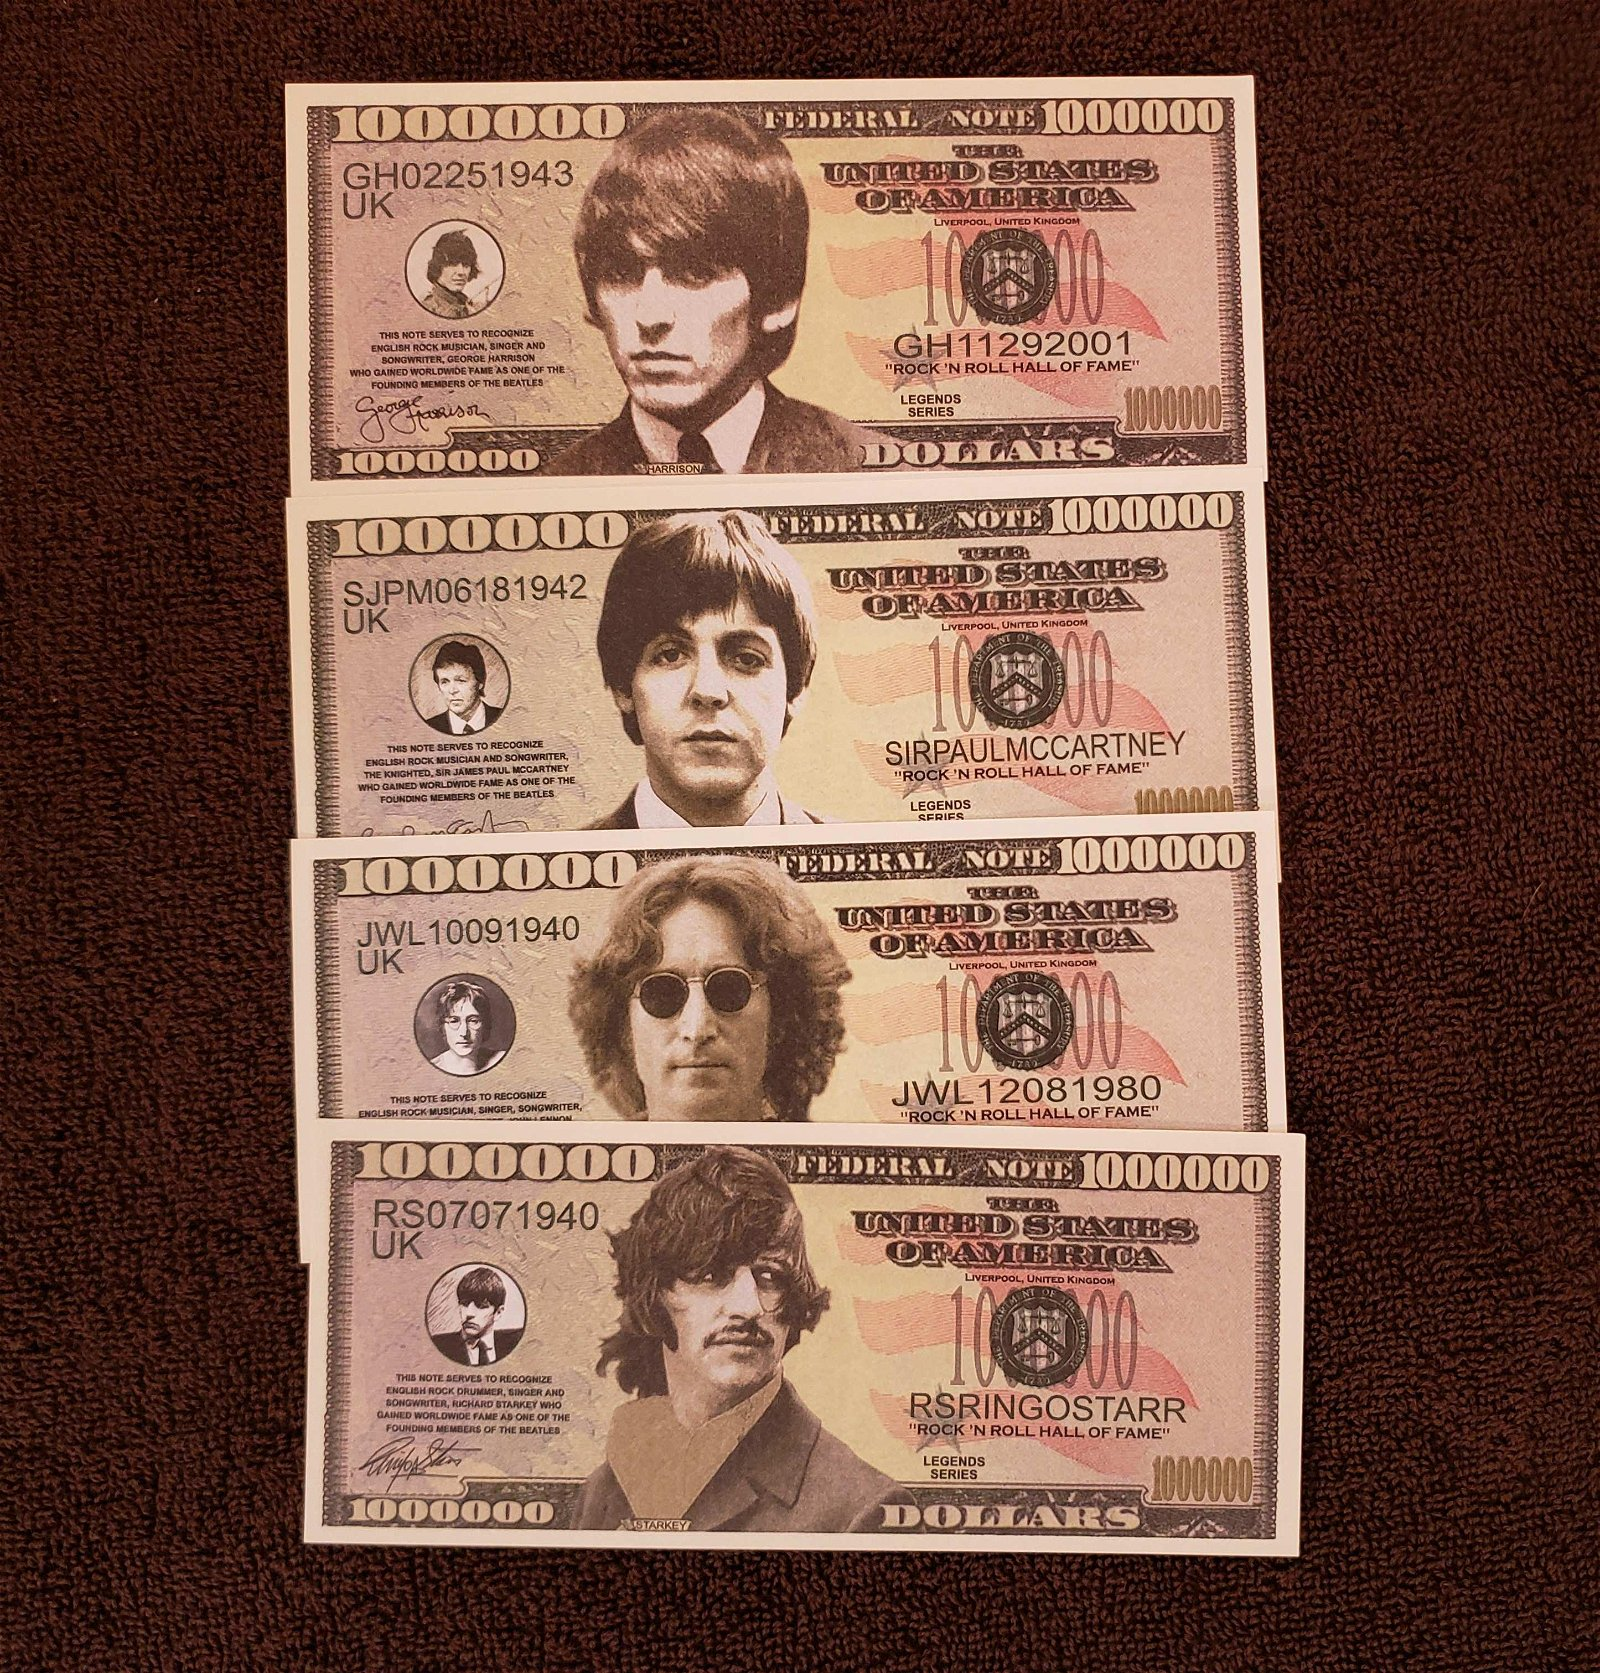 BEATLES FANTASY CURRENCY NOTES